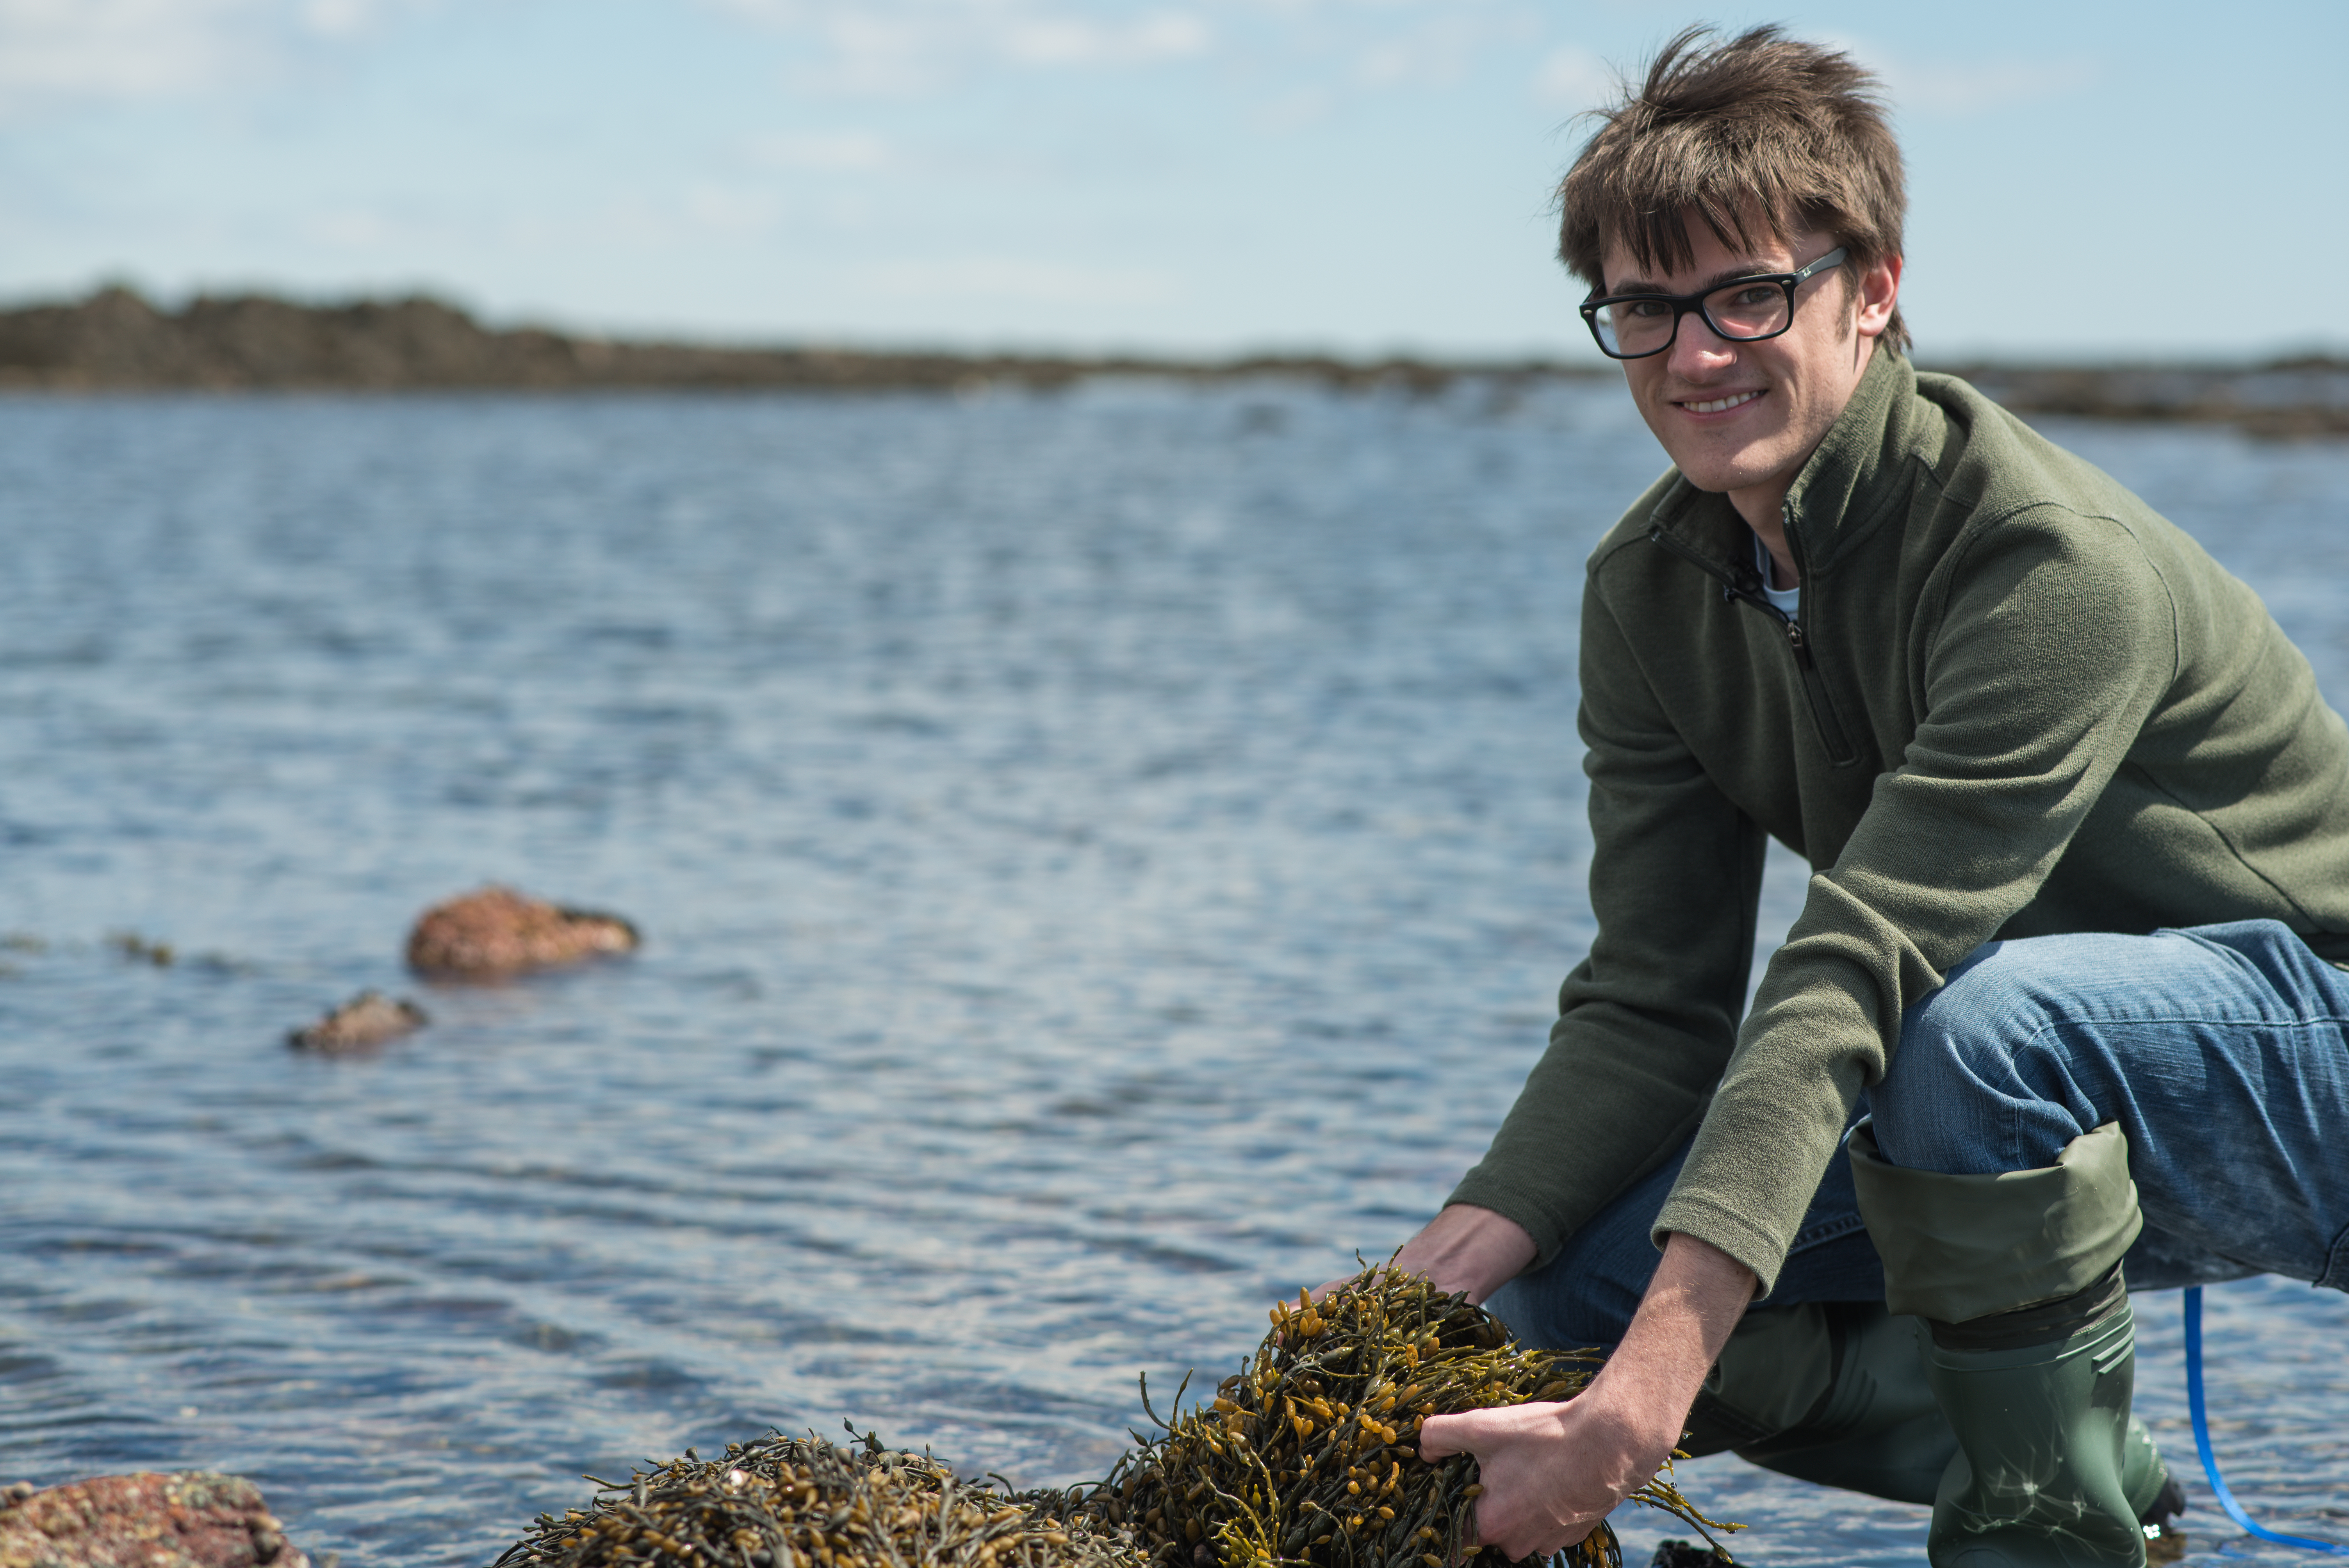 Young man with short dark hair and black glasses crouches down by rocky ocean shoreline with handful of olive grey seaweed.